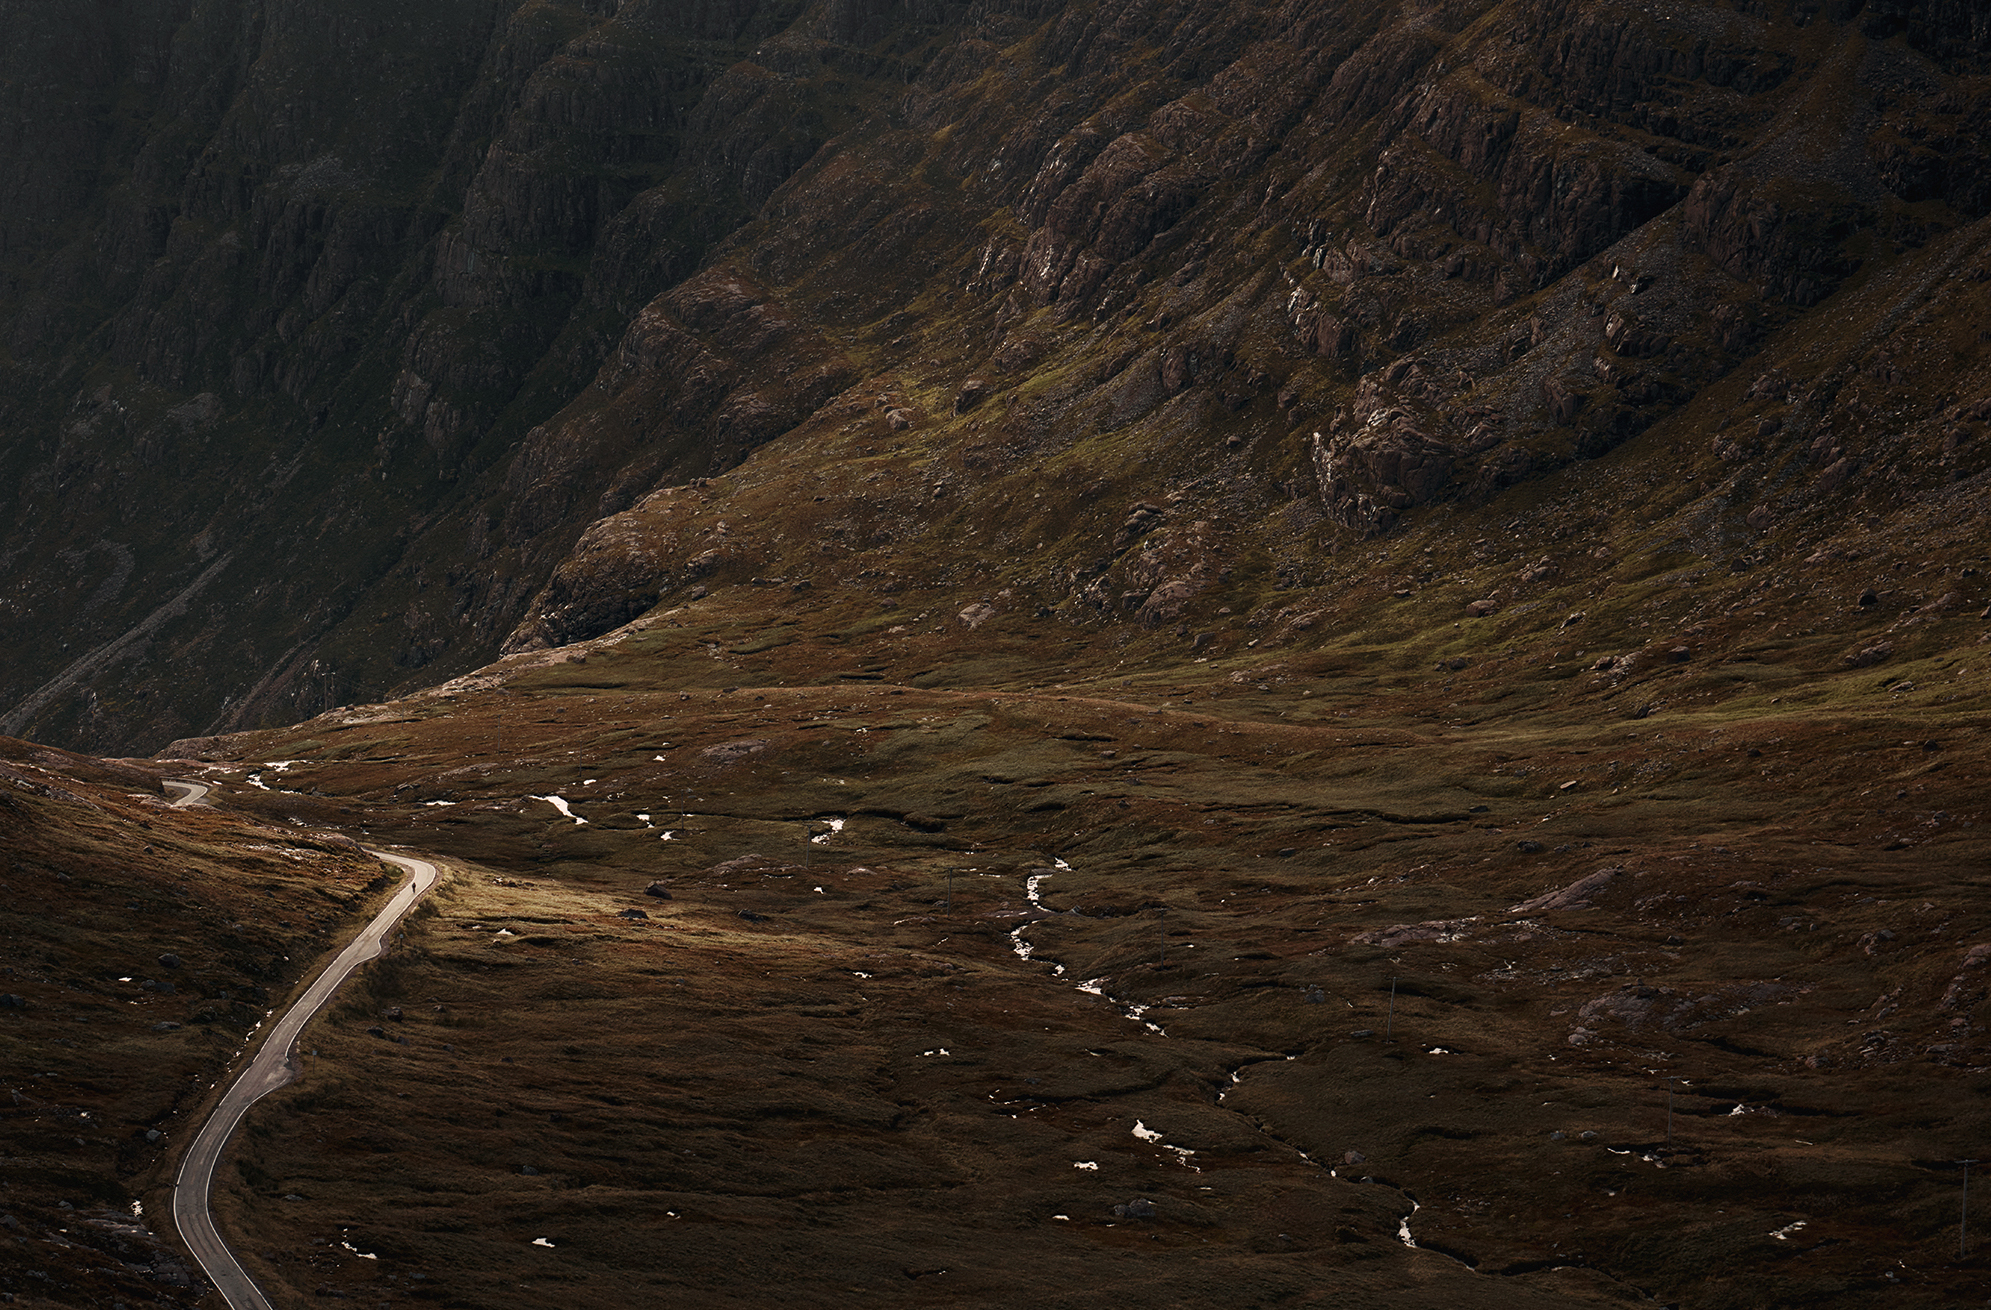 A project looking at the most dramatic roads to cycle in the north of Scotland.